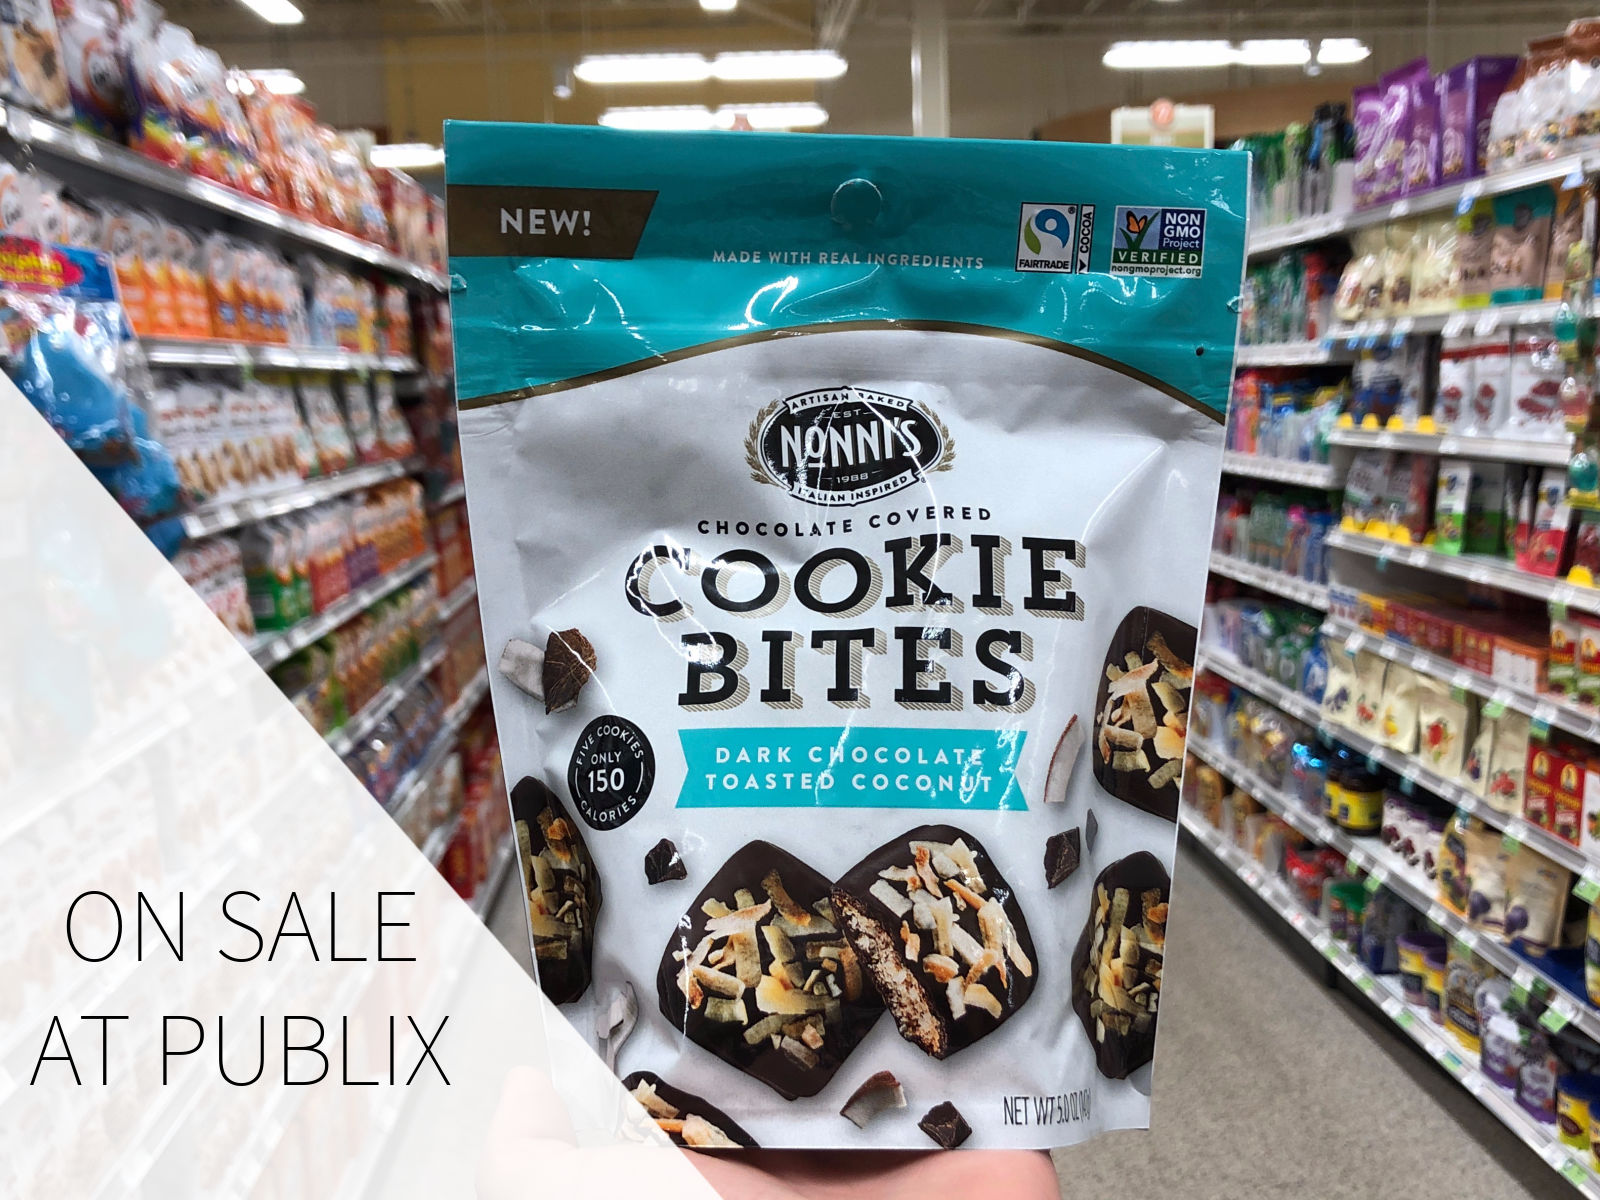 Try NEW Nonni's Chocolate Covered Cookie Bites - Save Now At Publix on I Heart Publix 1